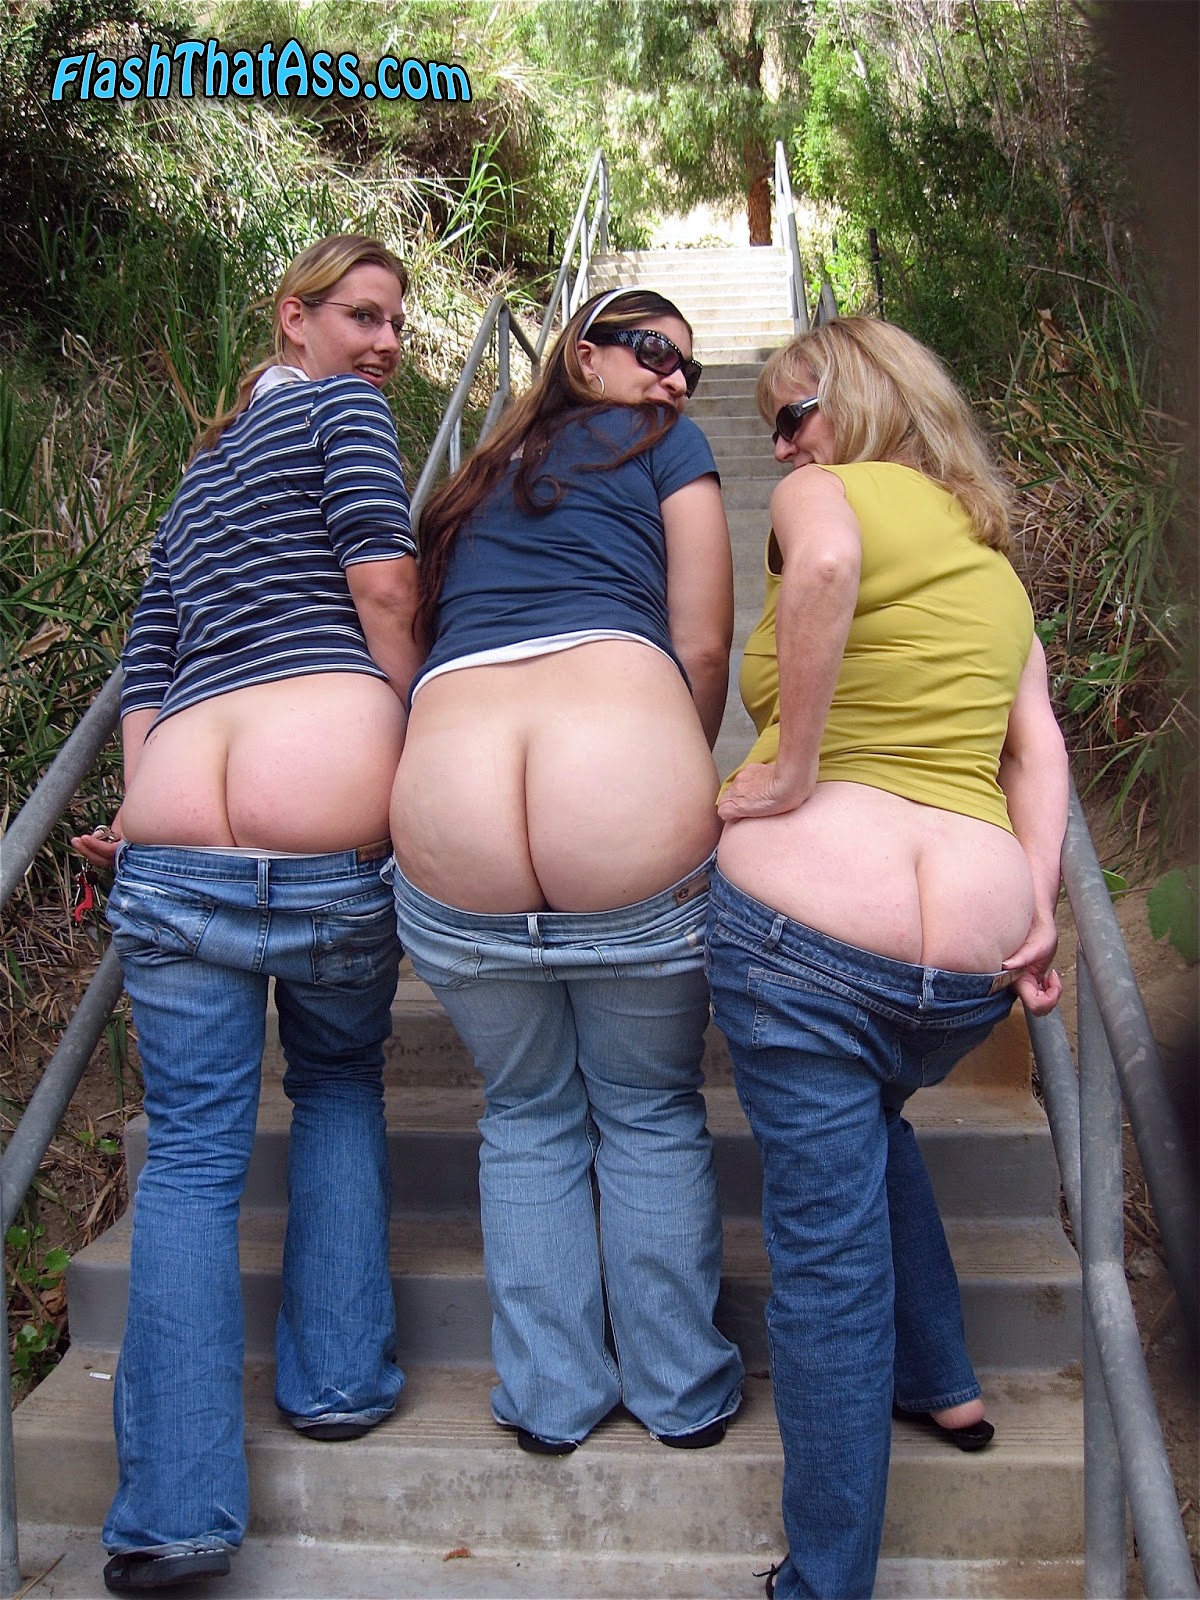 Sluts ass nude group